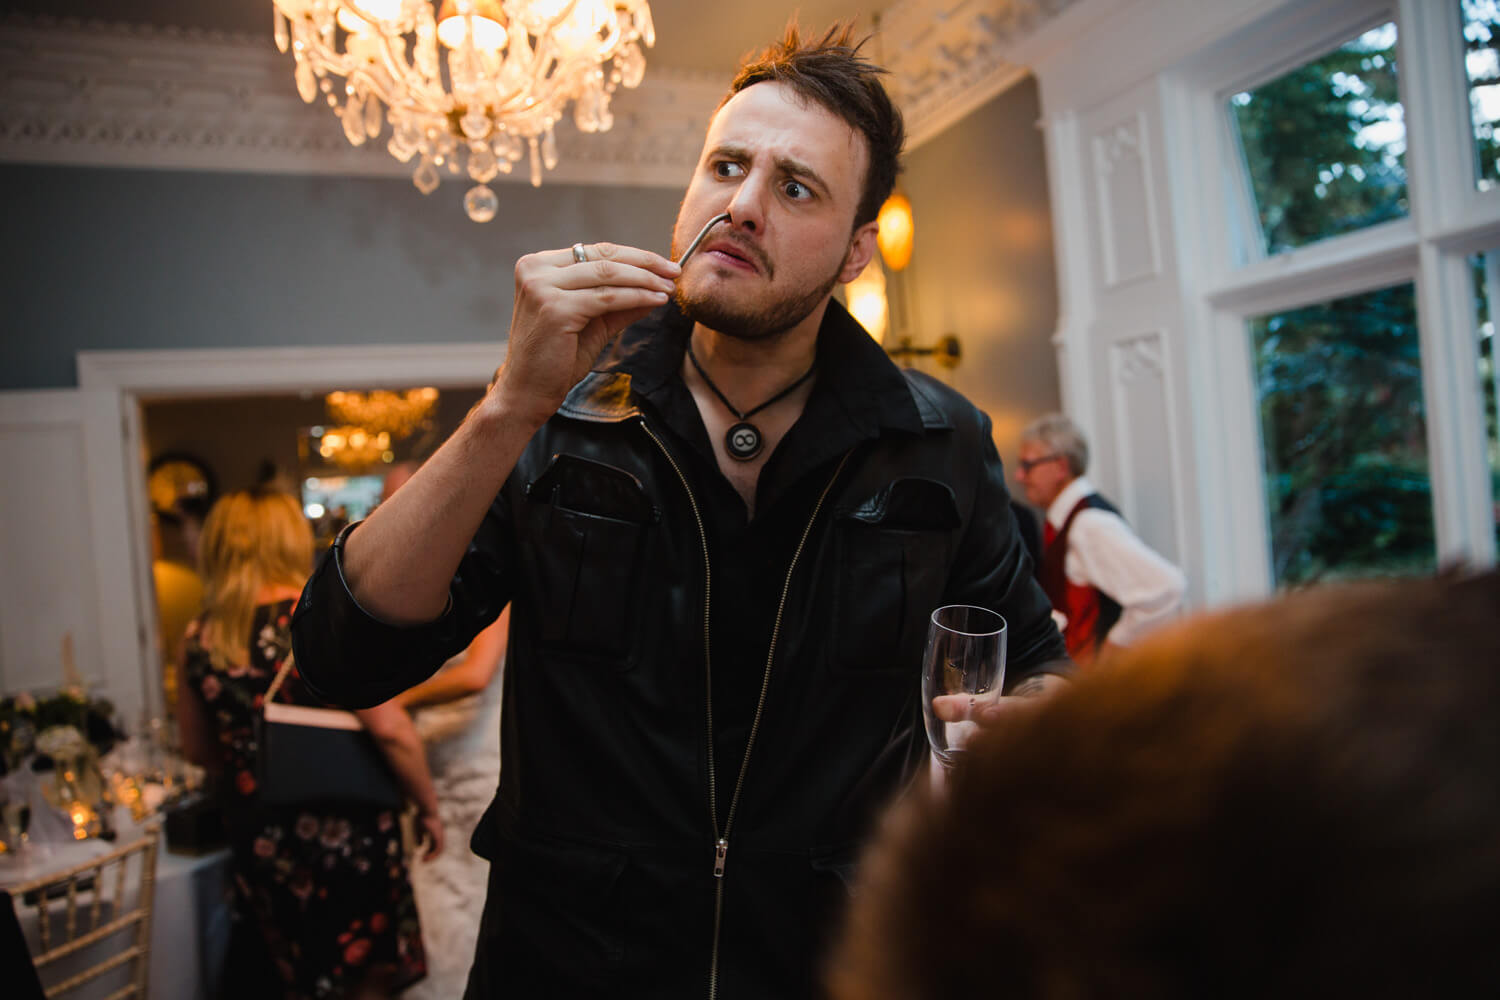 magician from infiniti magic wowed guests using skills with a glass and nail